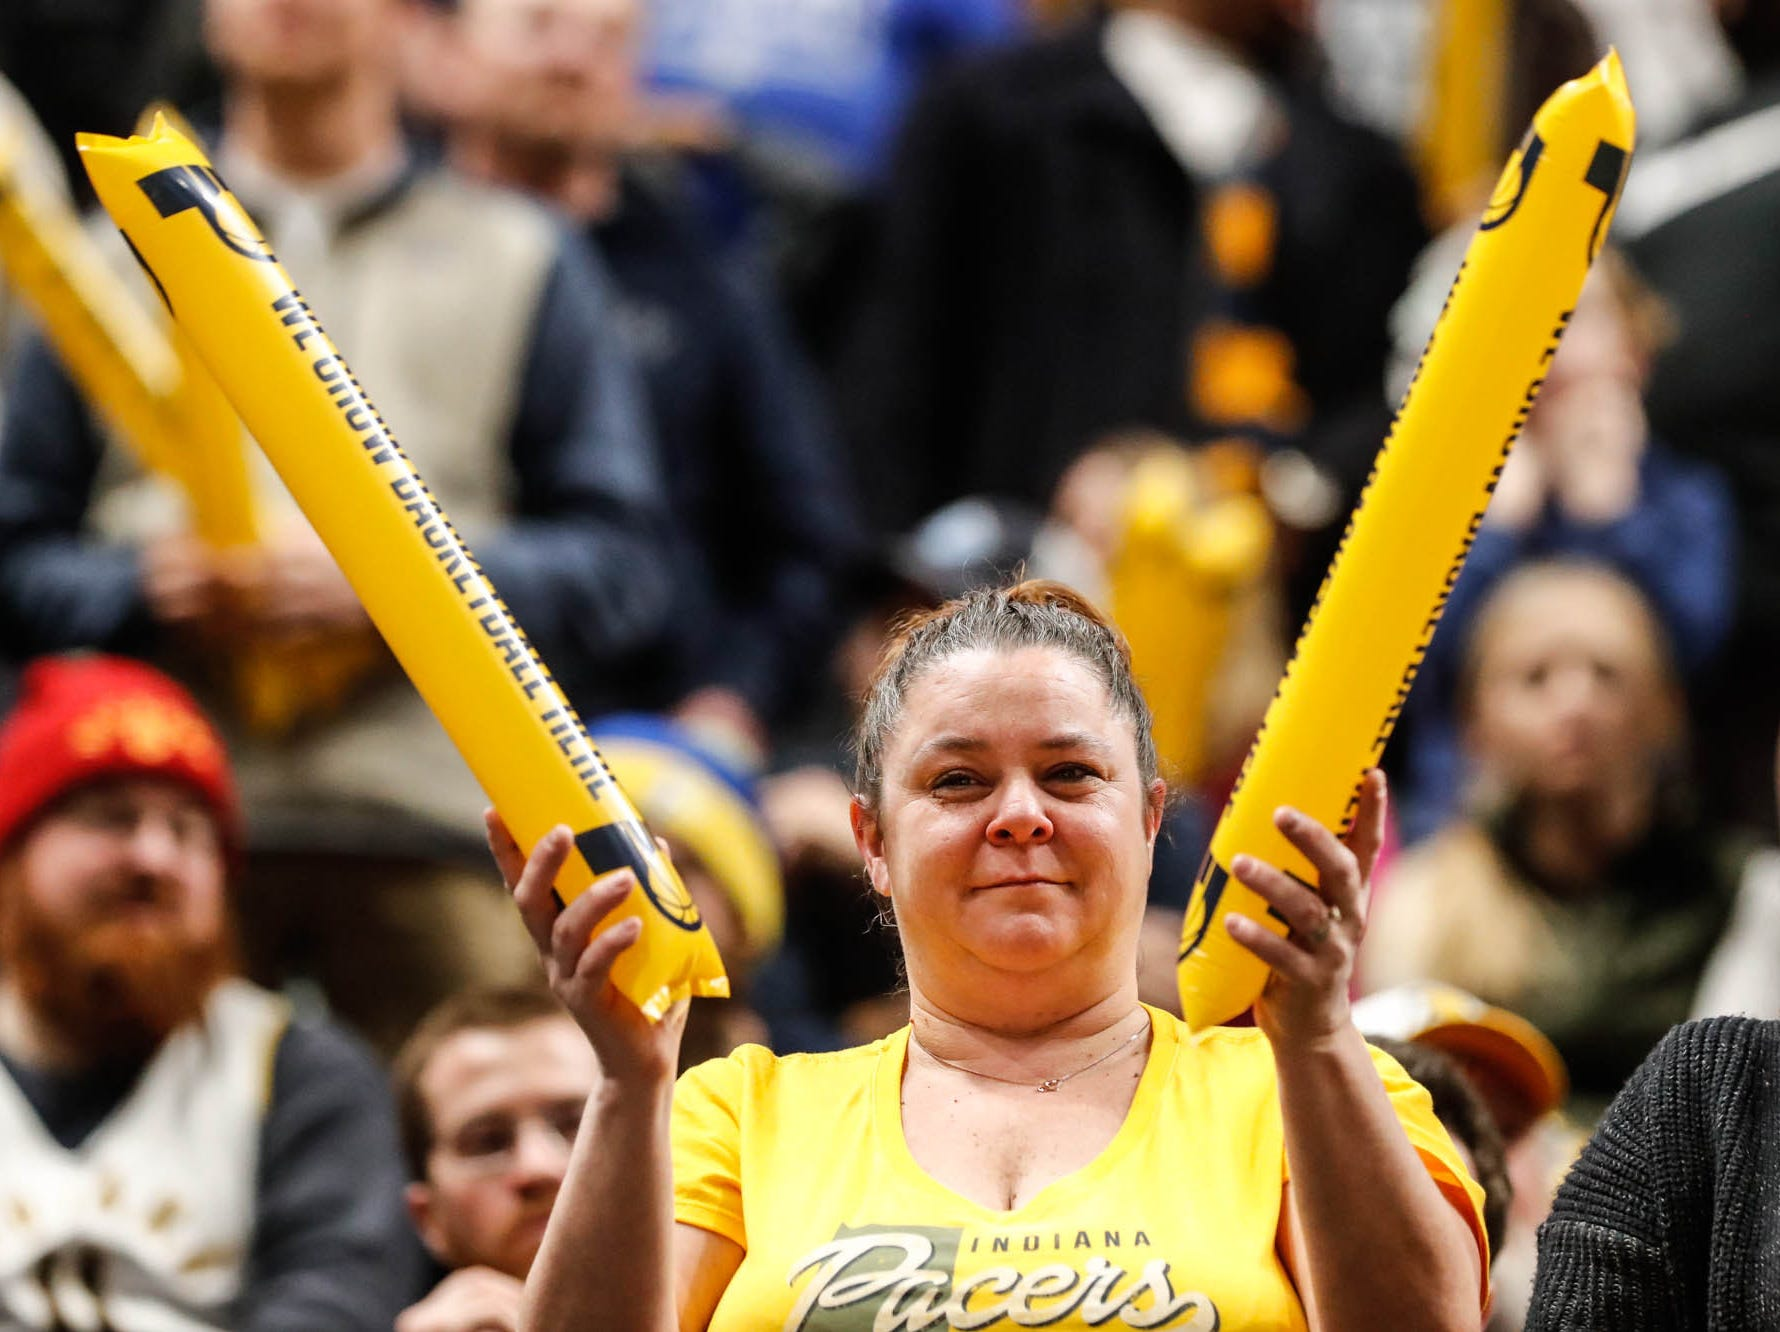 A fan attends a game between the Pacers and Hornets at Bankers Life Fieldhouse on Sunday, Jan. 20, 2019.